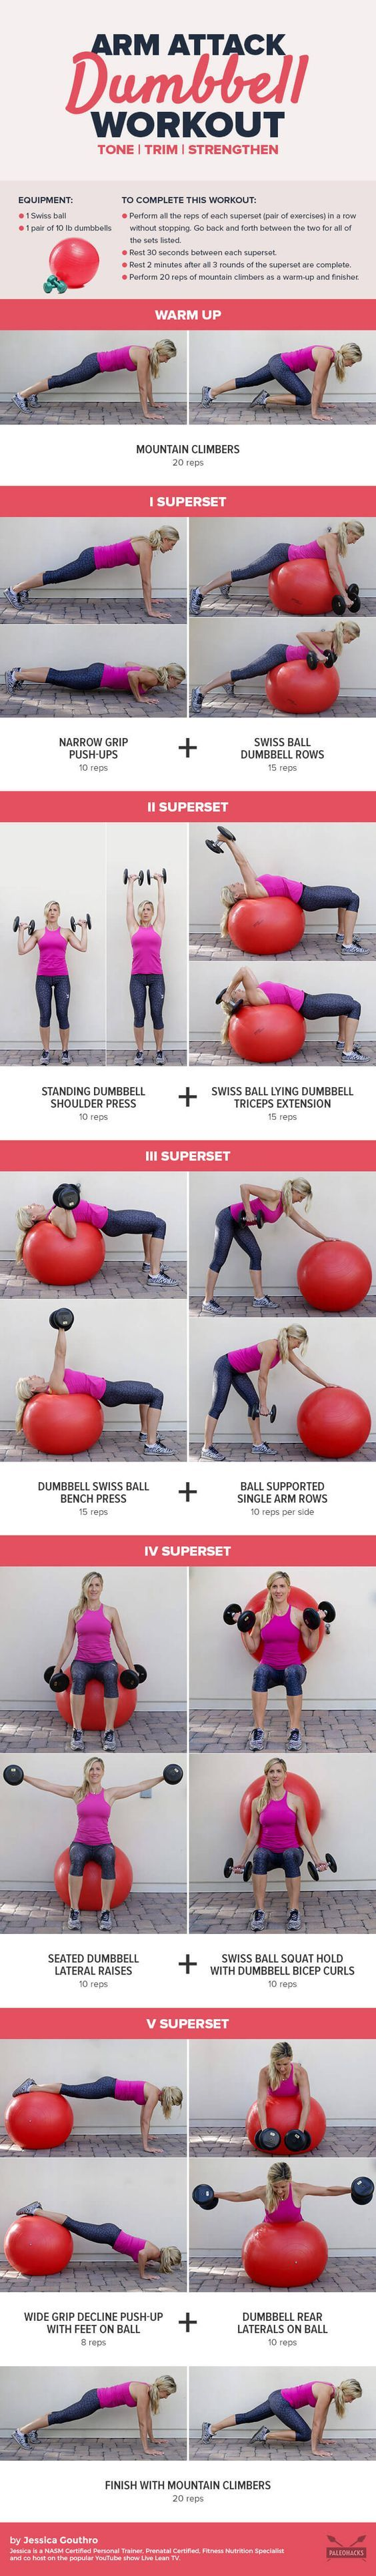 It's a common misconception that it's possible to lose arm fat through spot reduction - that a couple of curls and tricep exercises will tone up arms. Get the workout here: http://paleo.co/dumbbellarmwod